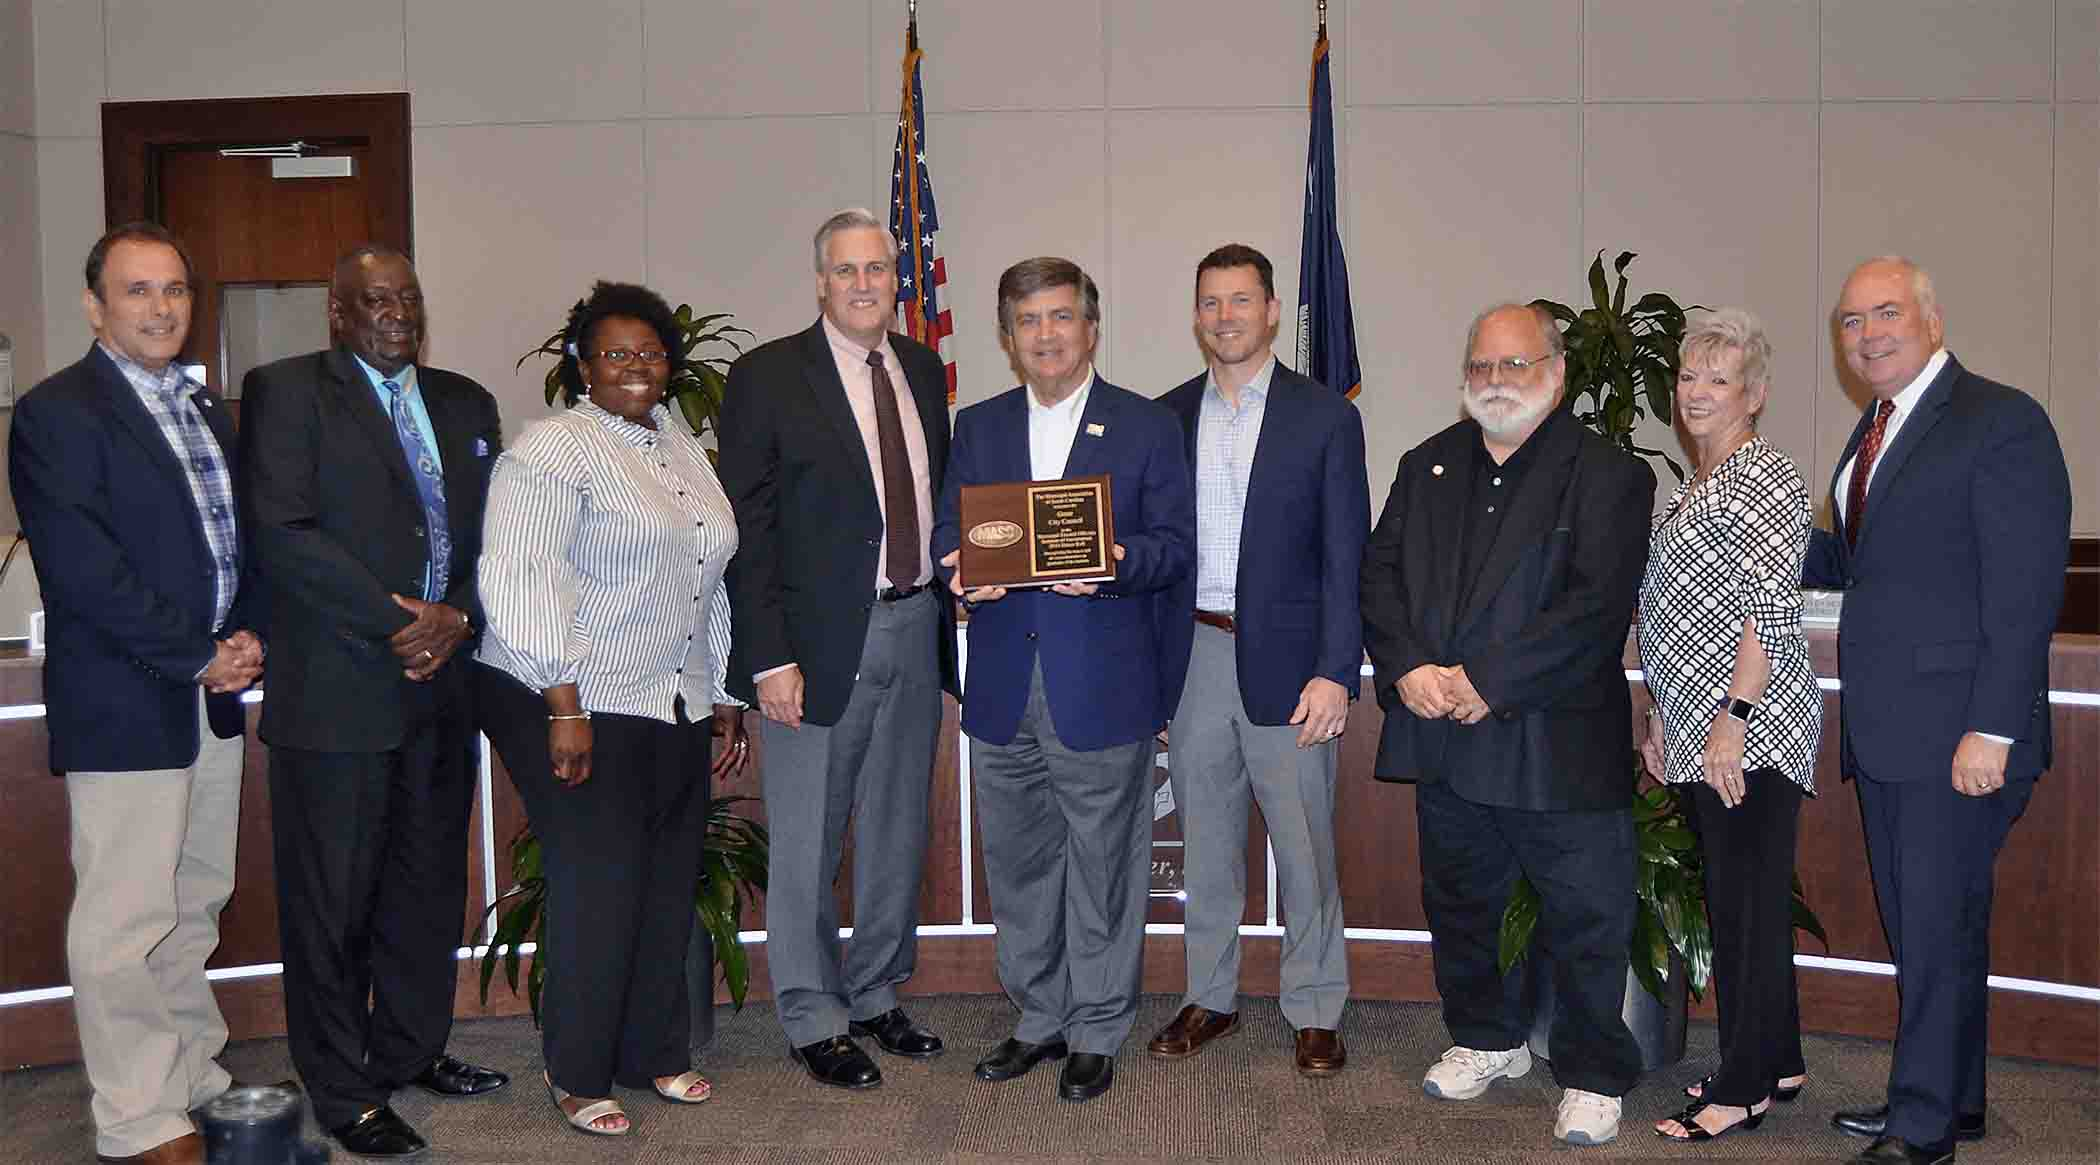 Pictured from left to right are: Jay Arrowood, Wayne Griffin, Kimberly Bookert, Mayor Rick Danner, Wayne George, Lee Dumas, Wryl